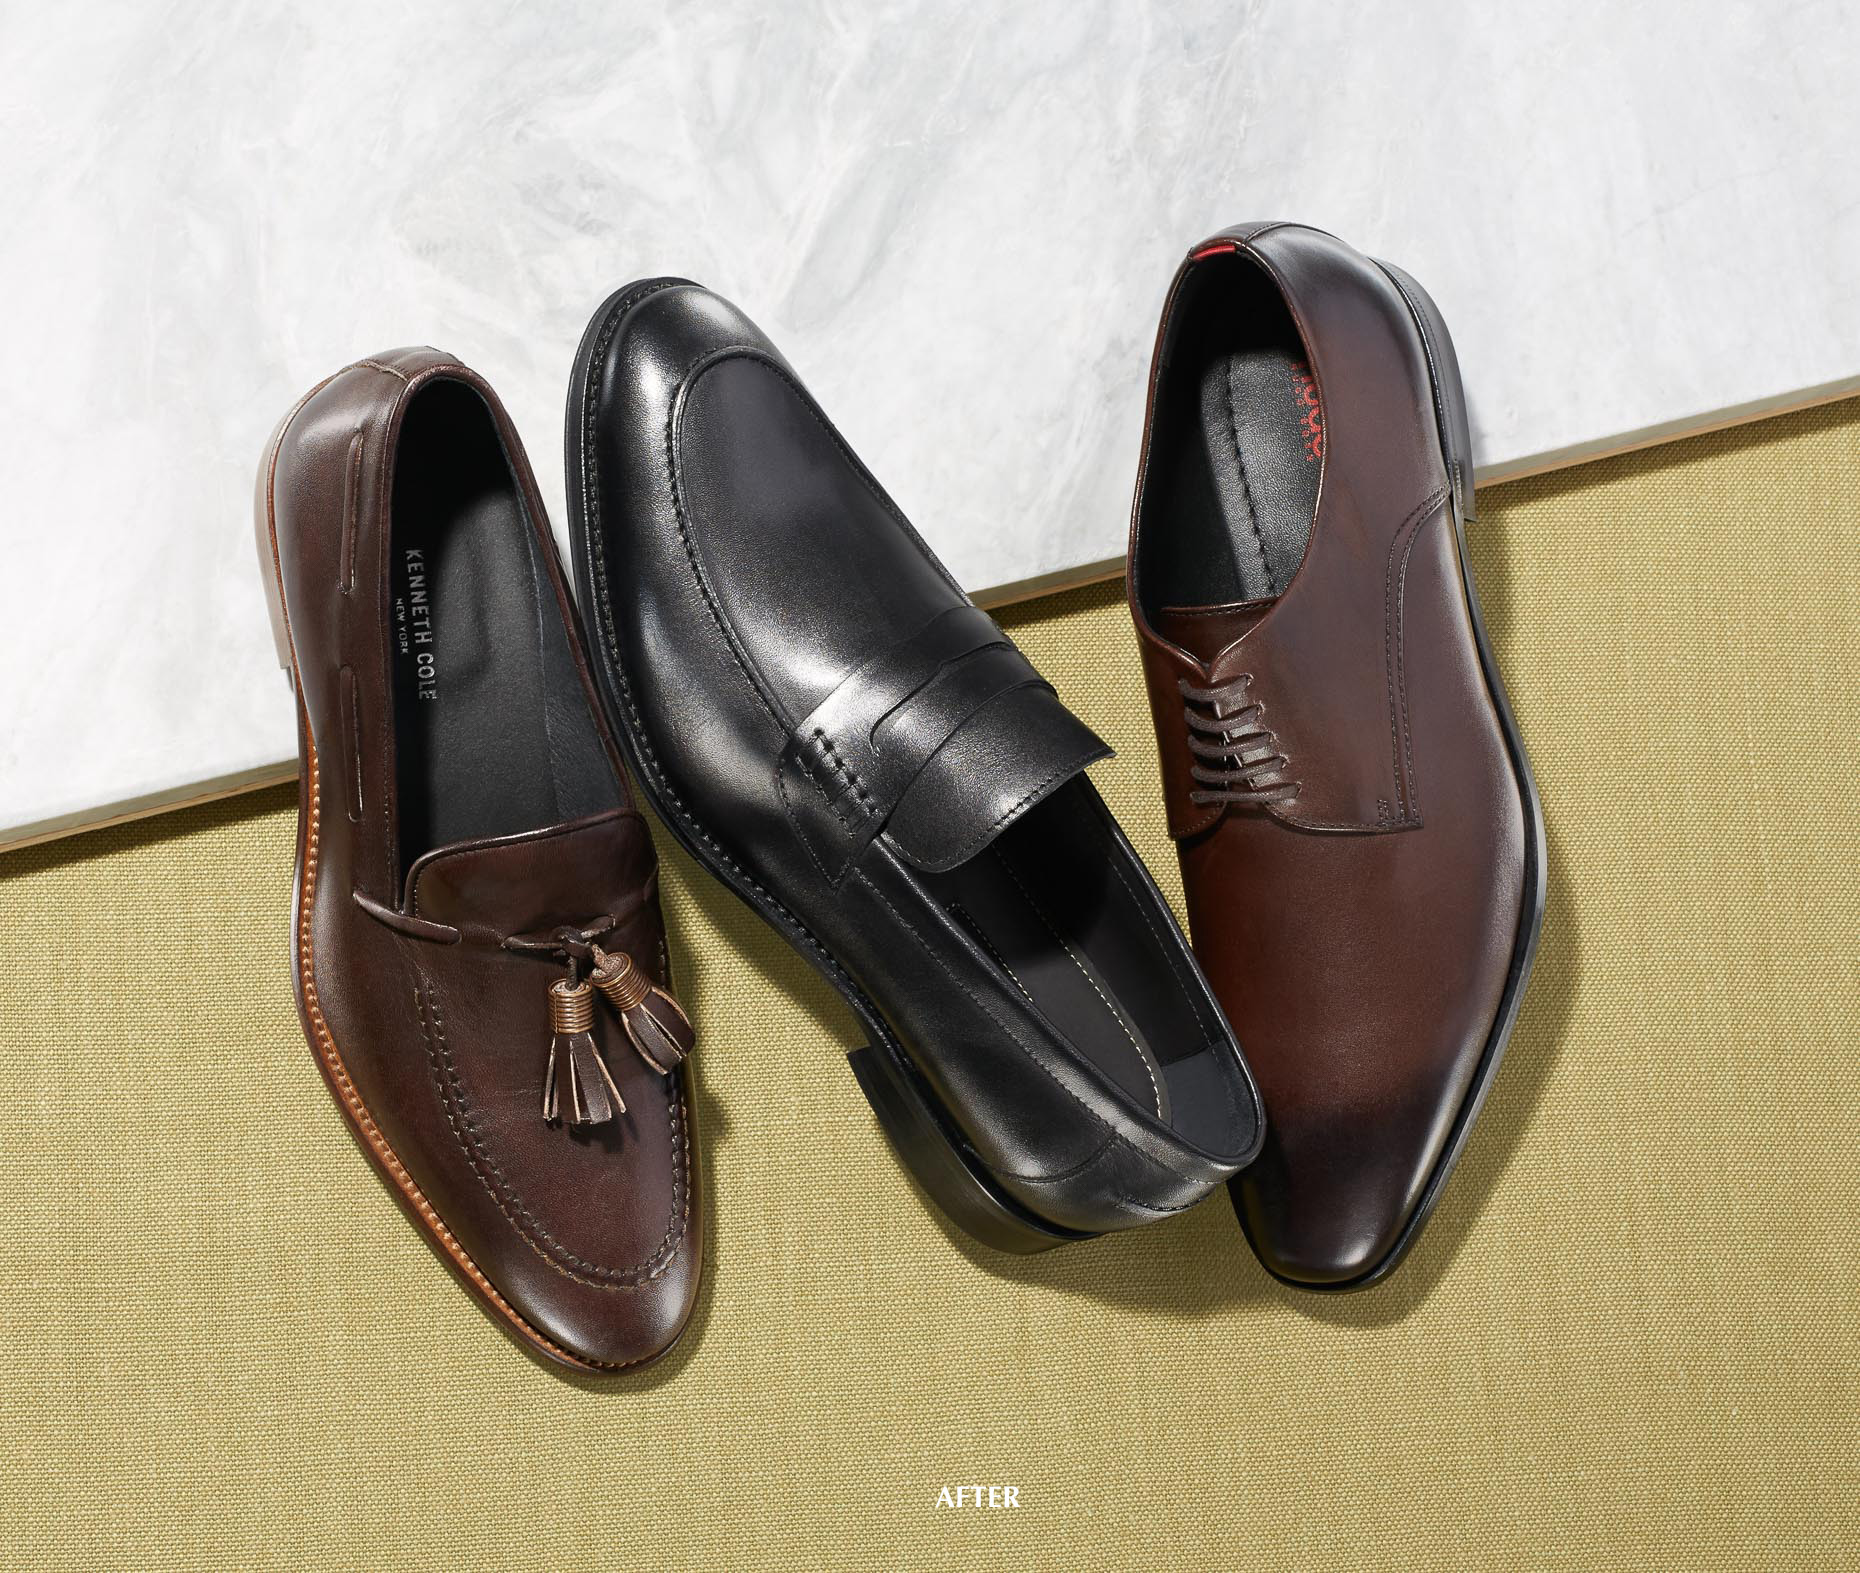 0417W1_MEN_DressShoe_ST1a